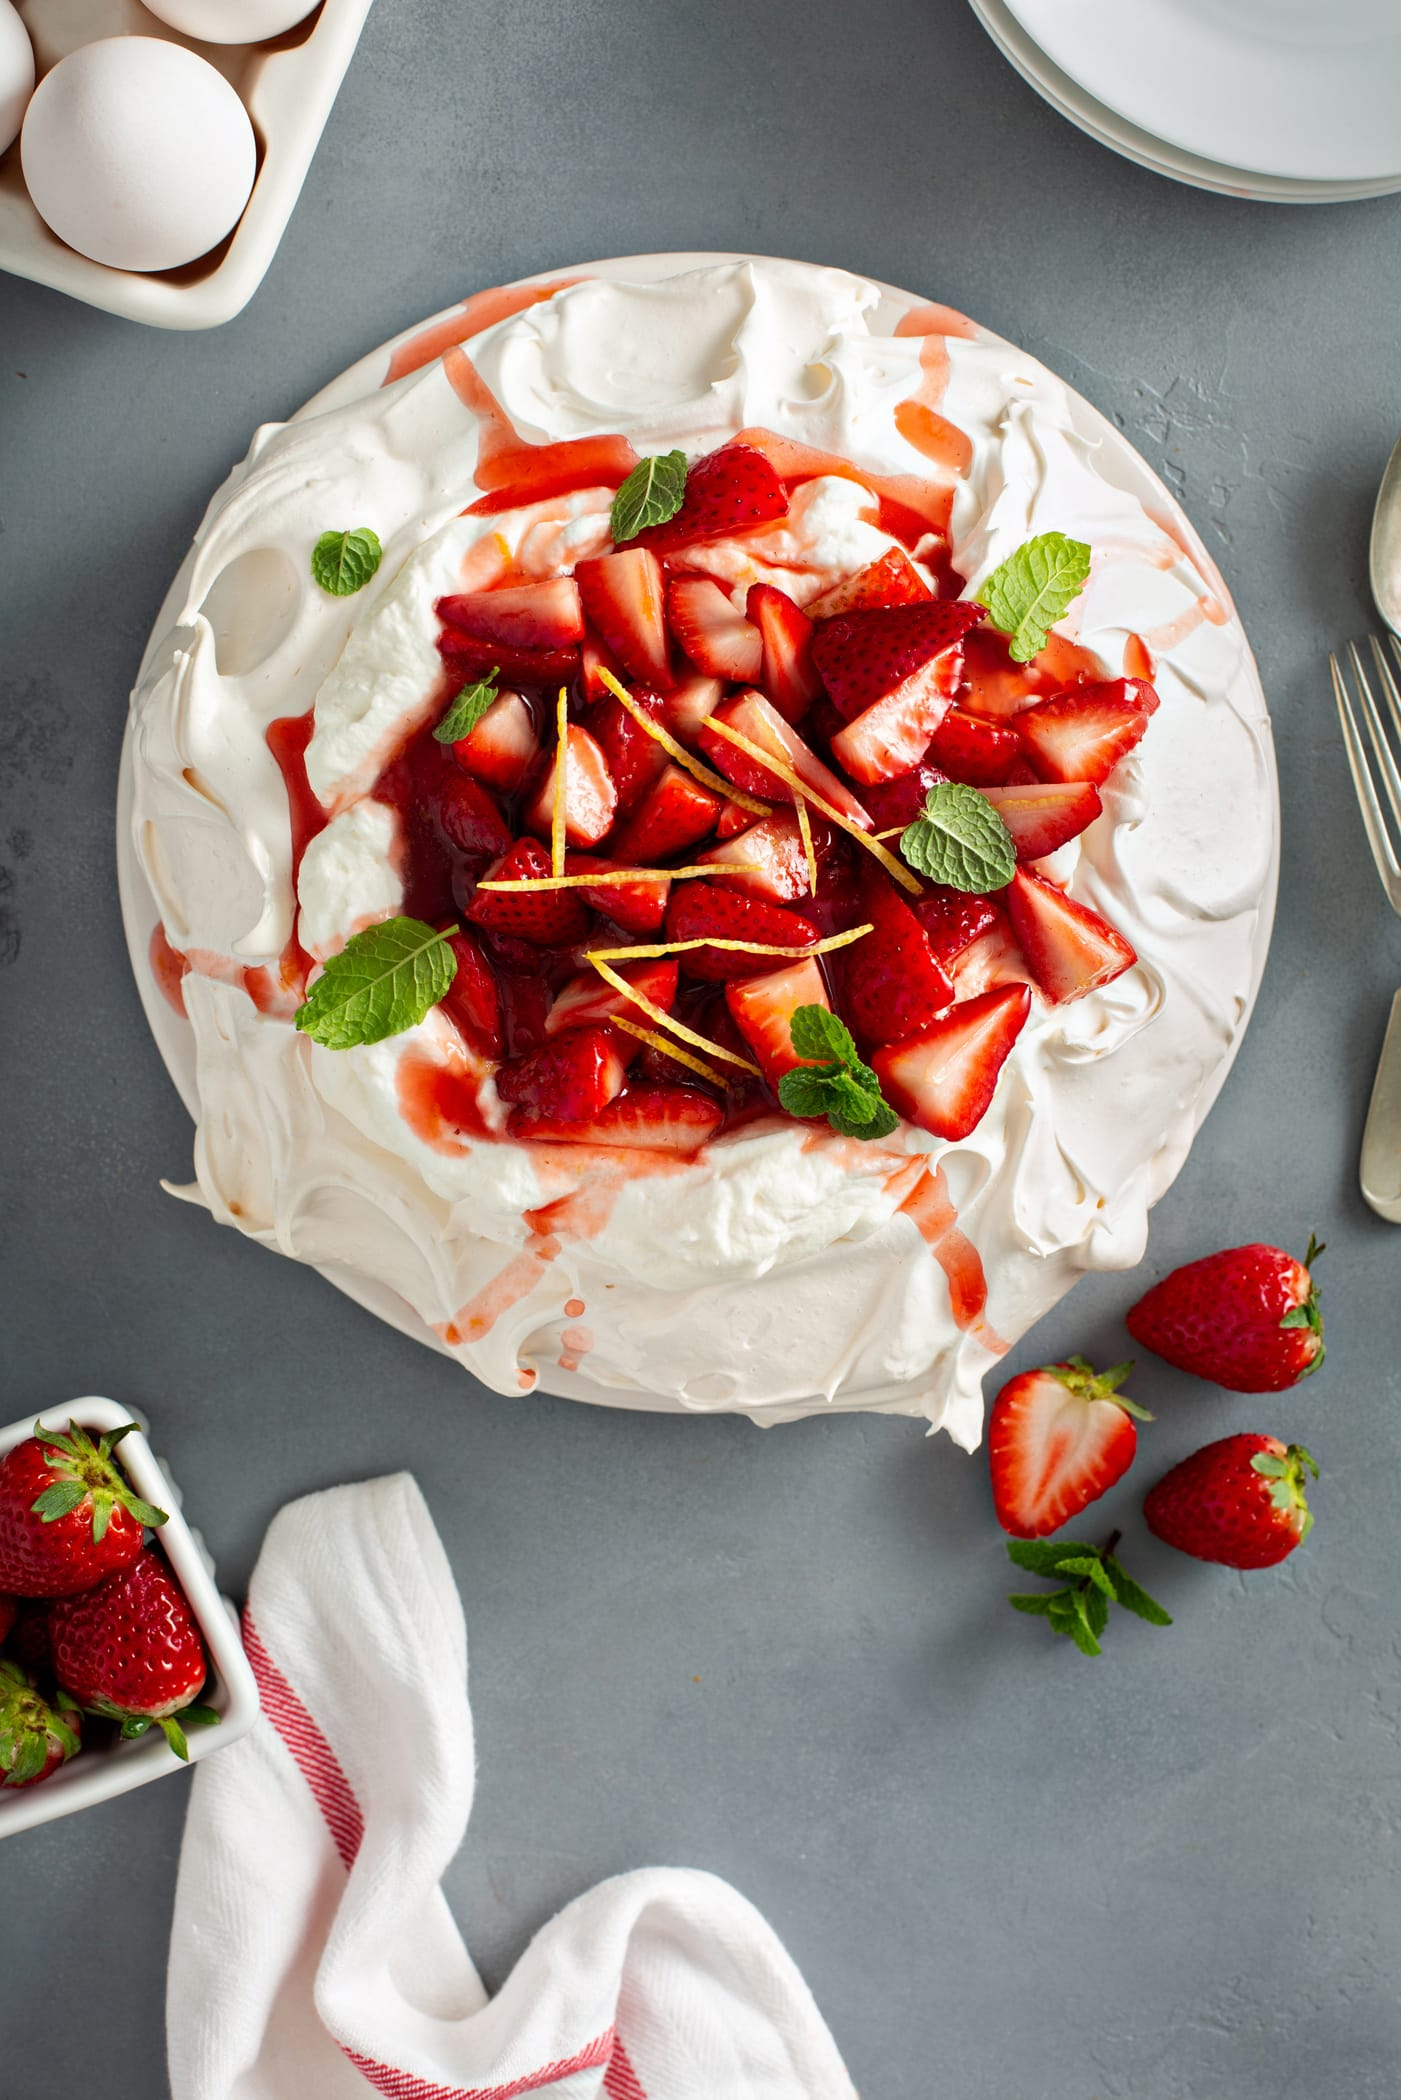 Pavlova topped with whipped cream, sliced strawberries, slivers of lemon rind, and mint leaves. There is a container of strawberries, three strawberries laying next to the pavlova and a fork and spoon.